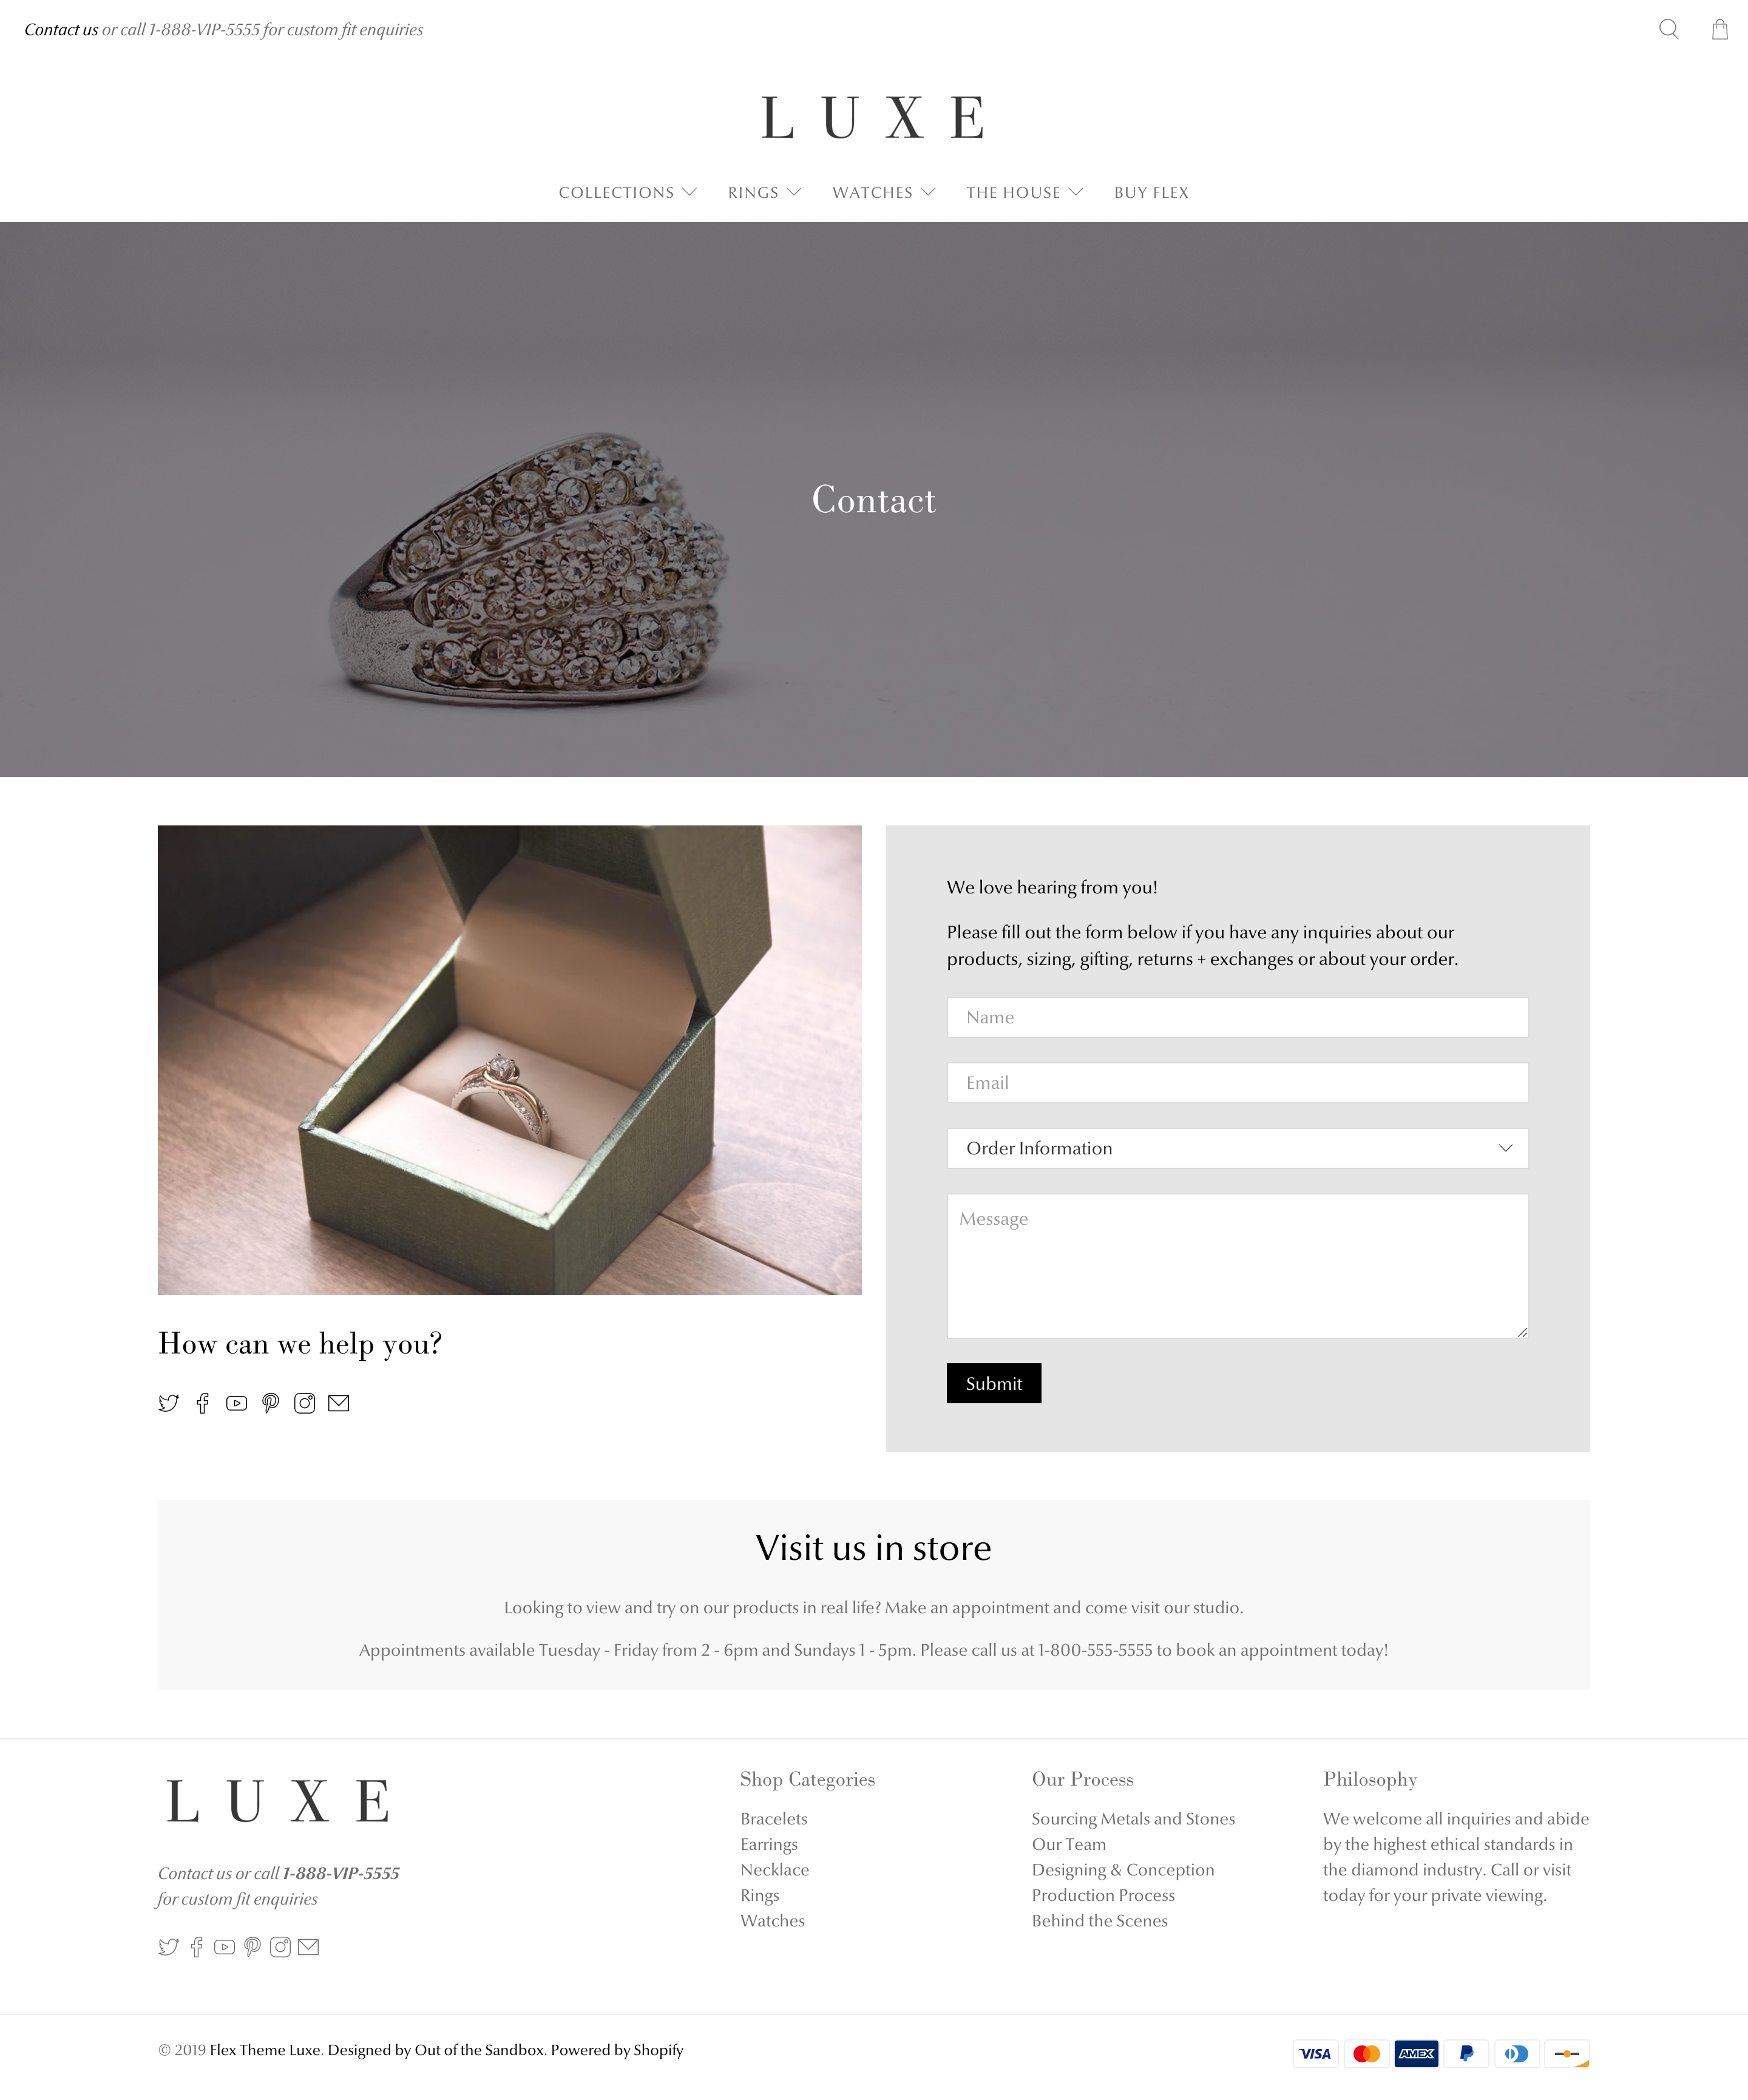 contact-page-luxe-shop-example.png